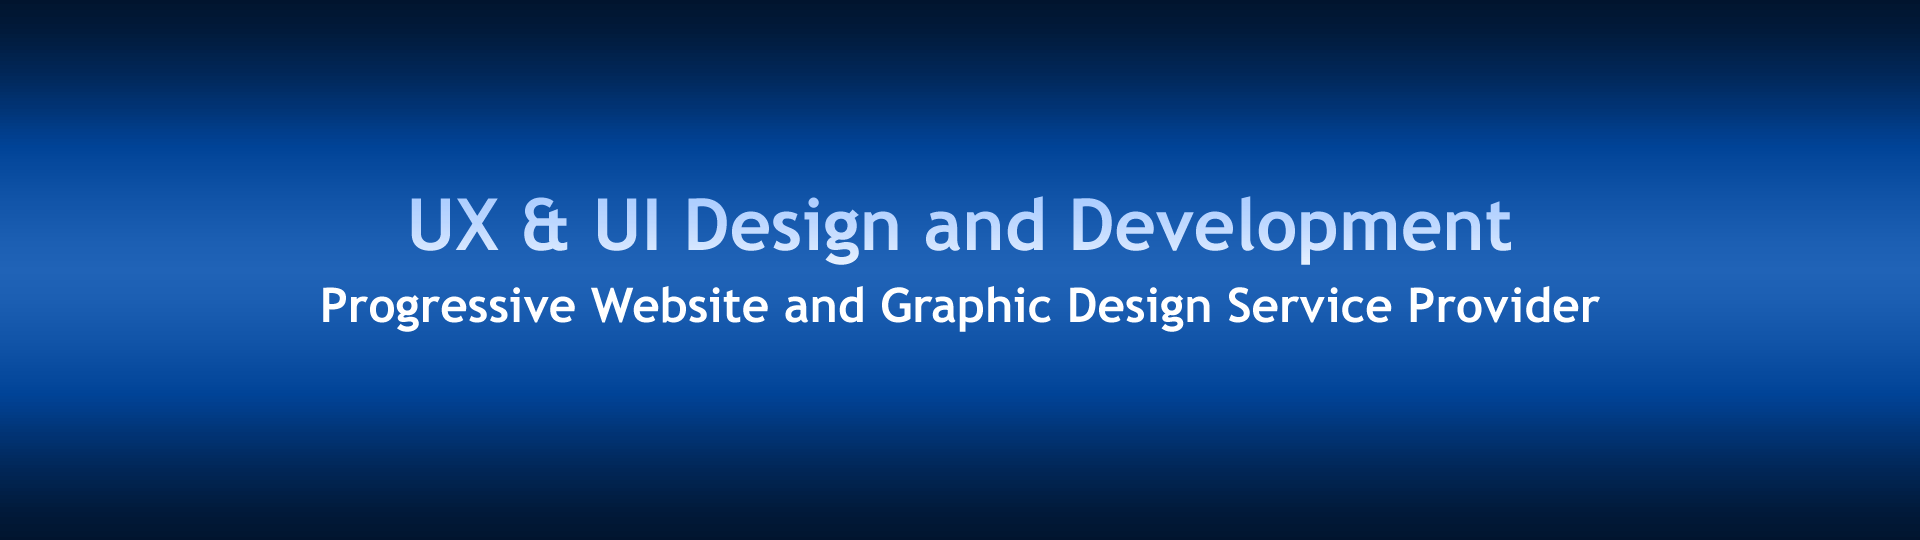 Slide 1 - Website and Graphic Design